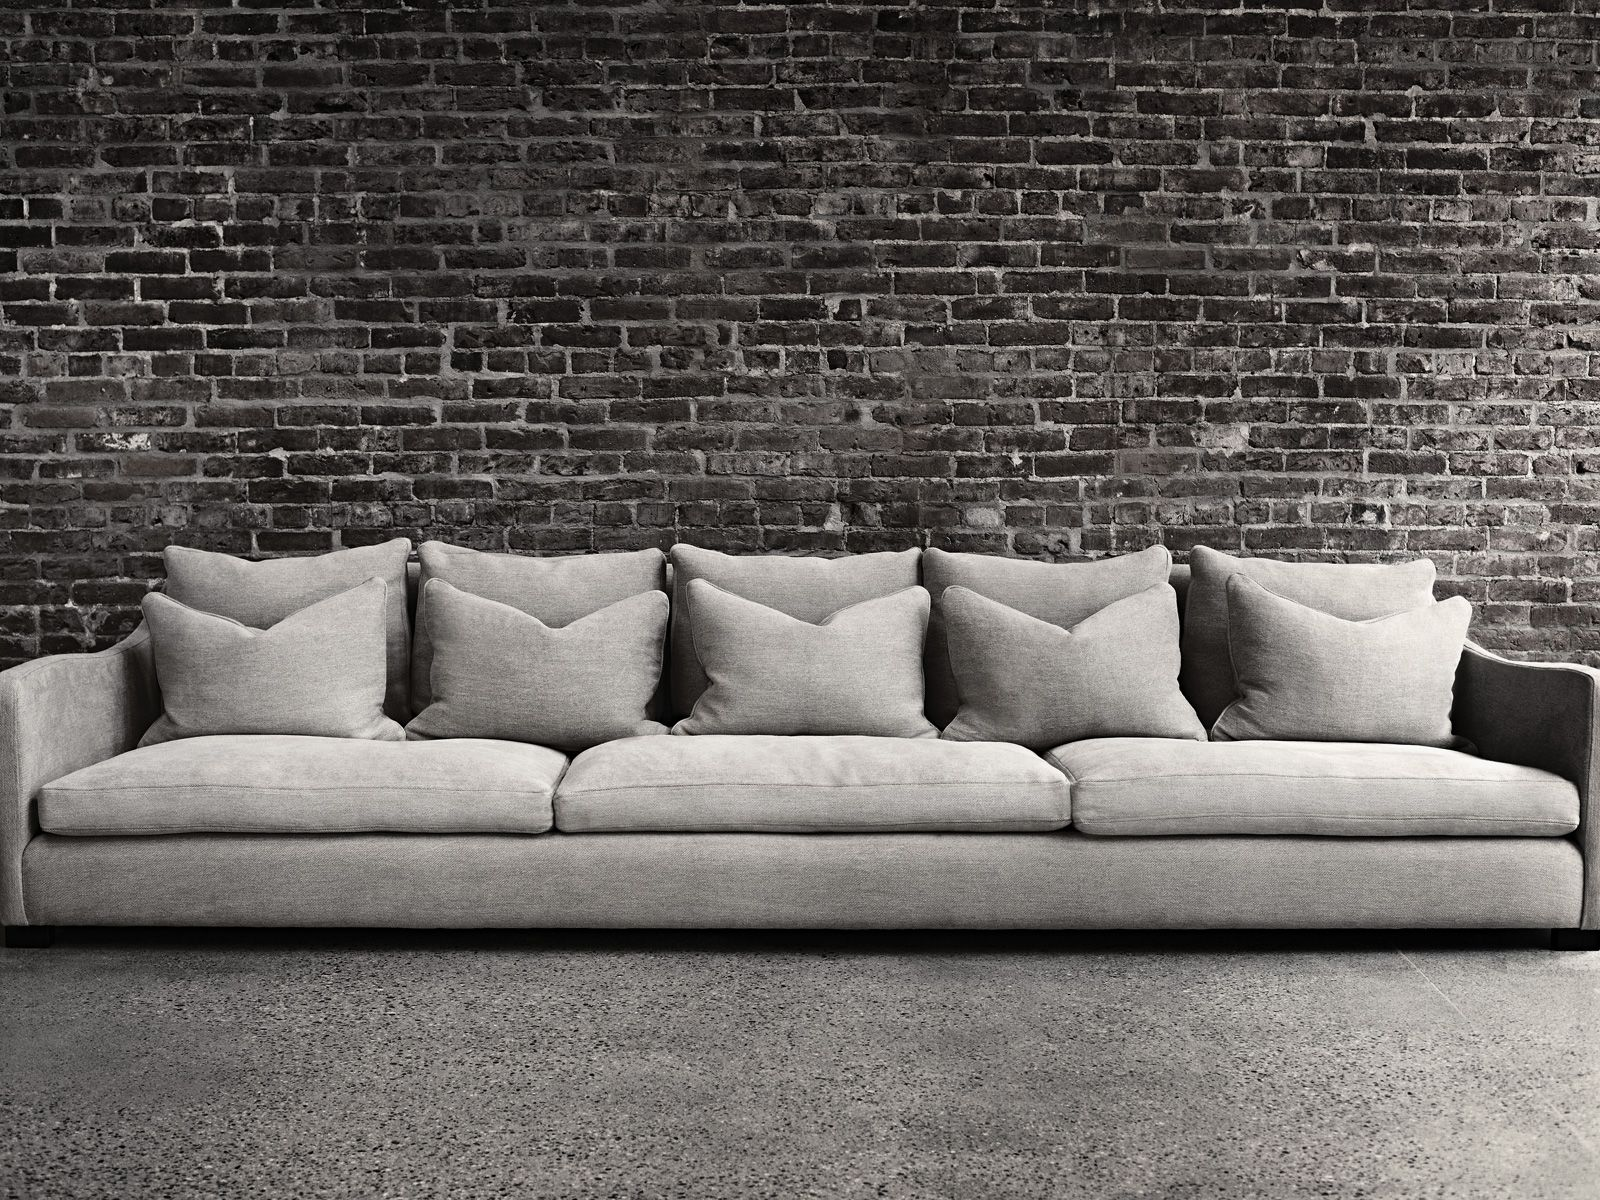 Montauk Sofas Olivia Sofa Neptune I Lust Over This Love The Skinny Arms